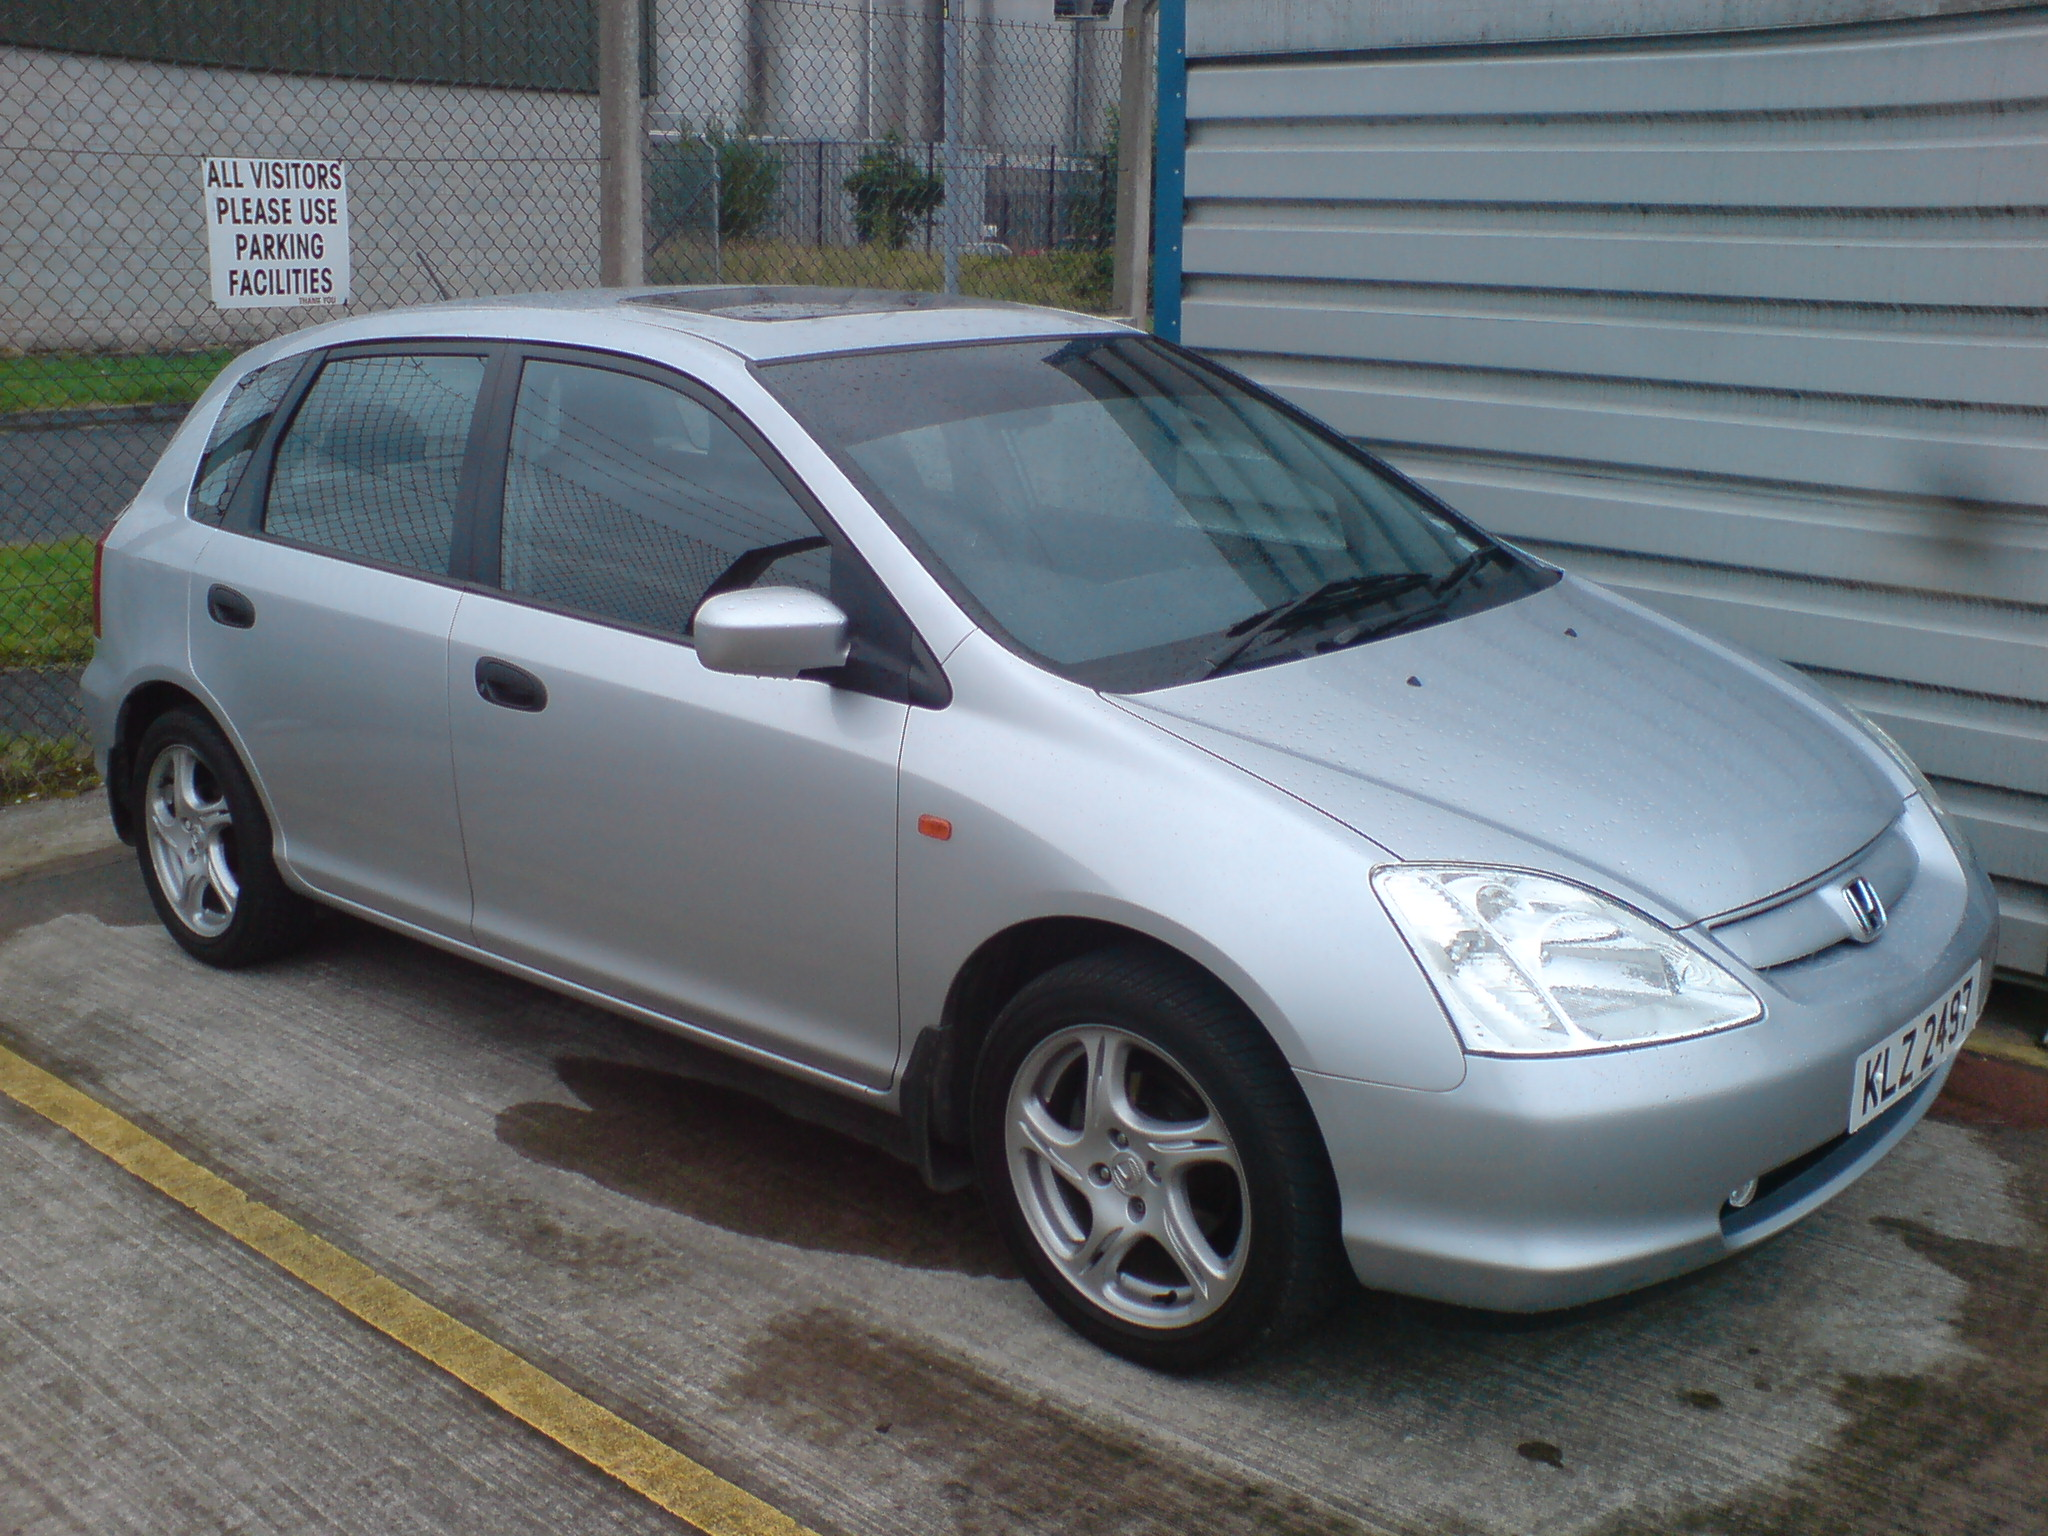 honda civic vii 2004 pictures #3